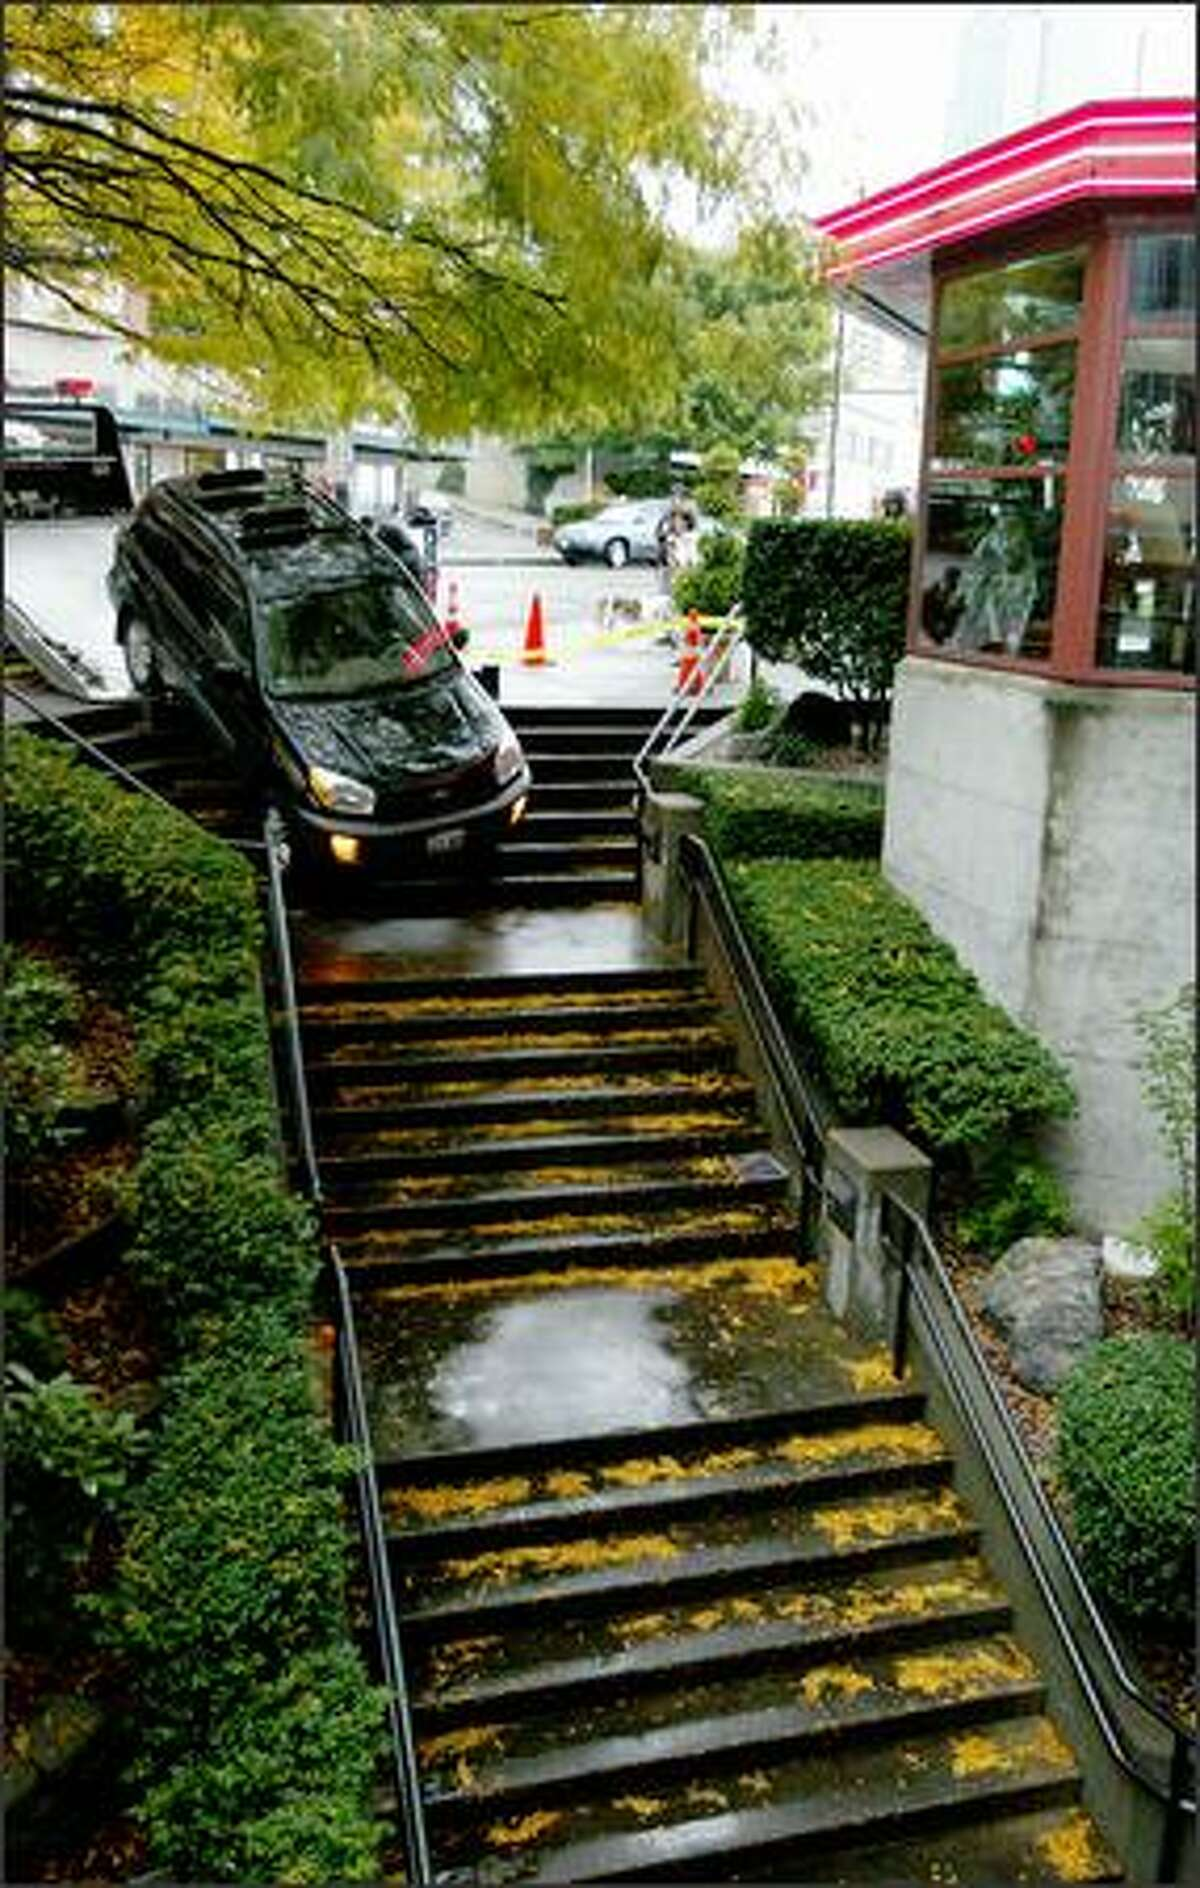 On Tuesday, a woman drove down the first flight of stairs underneath Cutters Restaurant on Western Avenue, just north of Pike Place Market. She thought she was turning into a parking garage.